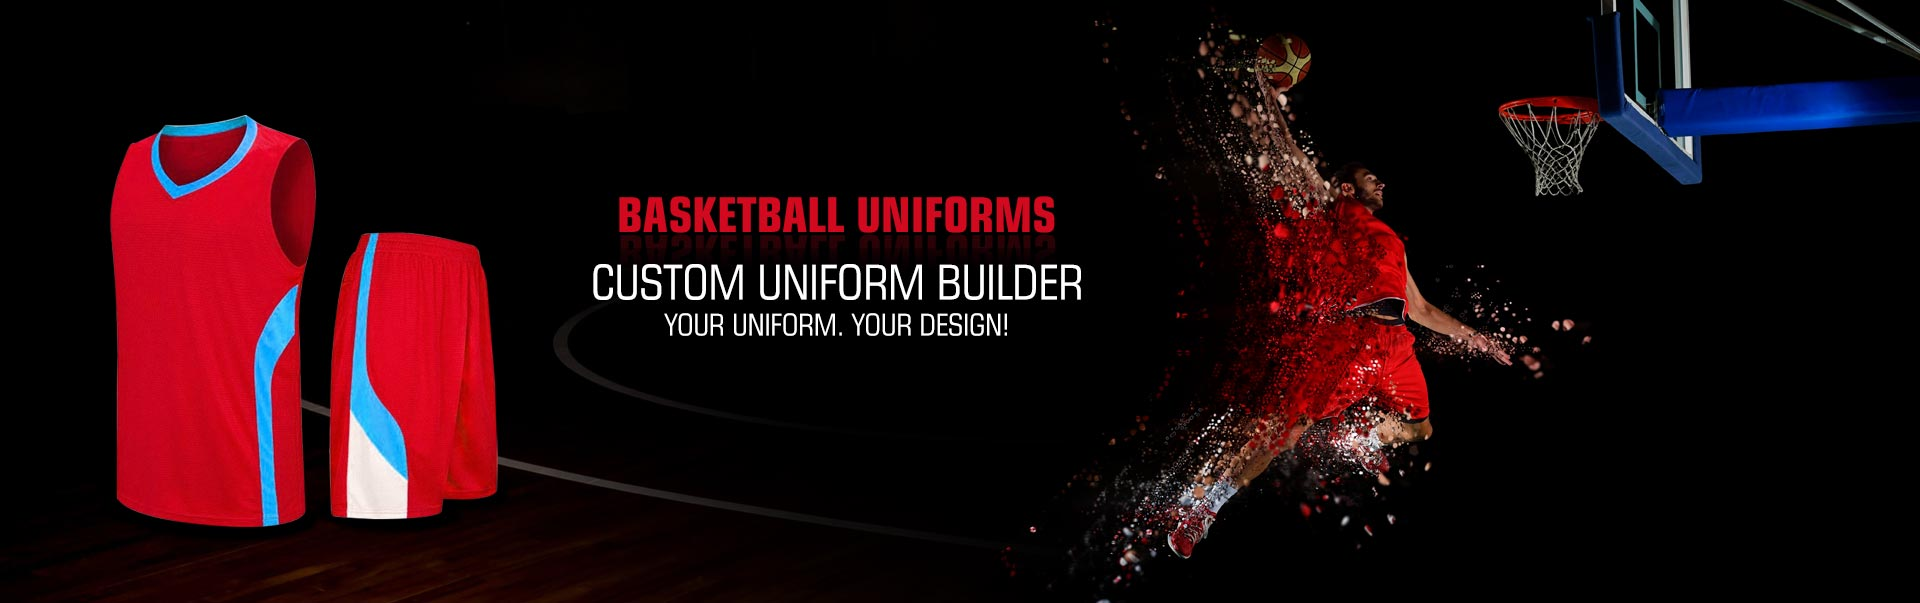 Basketball Uniforms Wholesaler, Suppliers in Palmdale